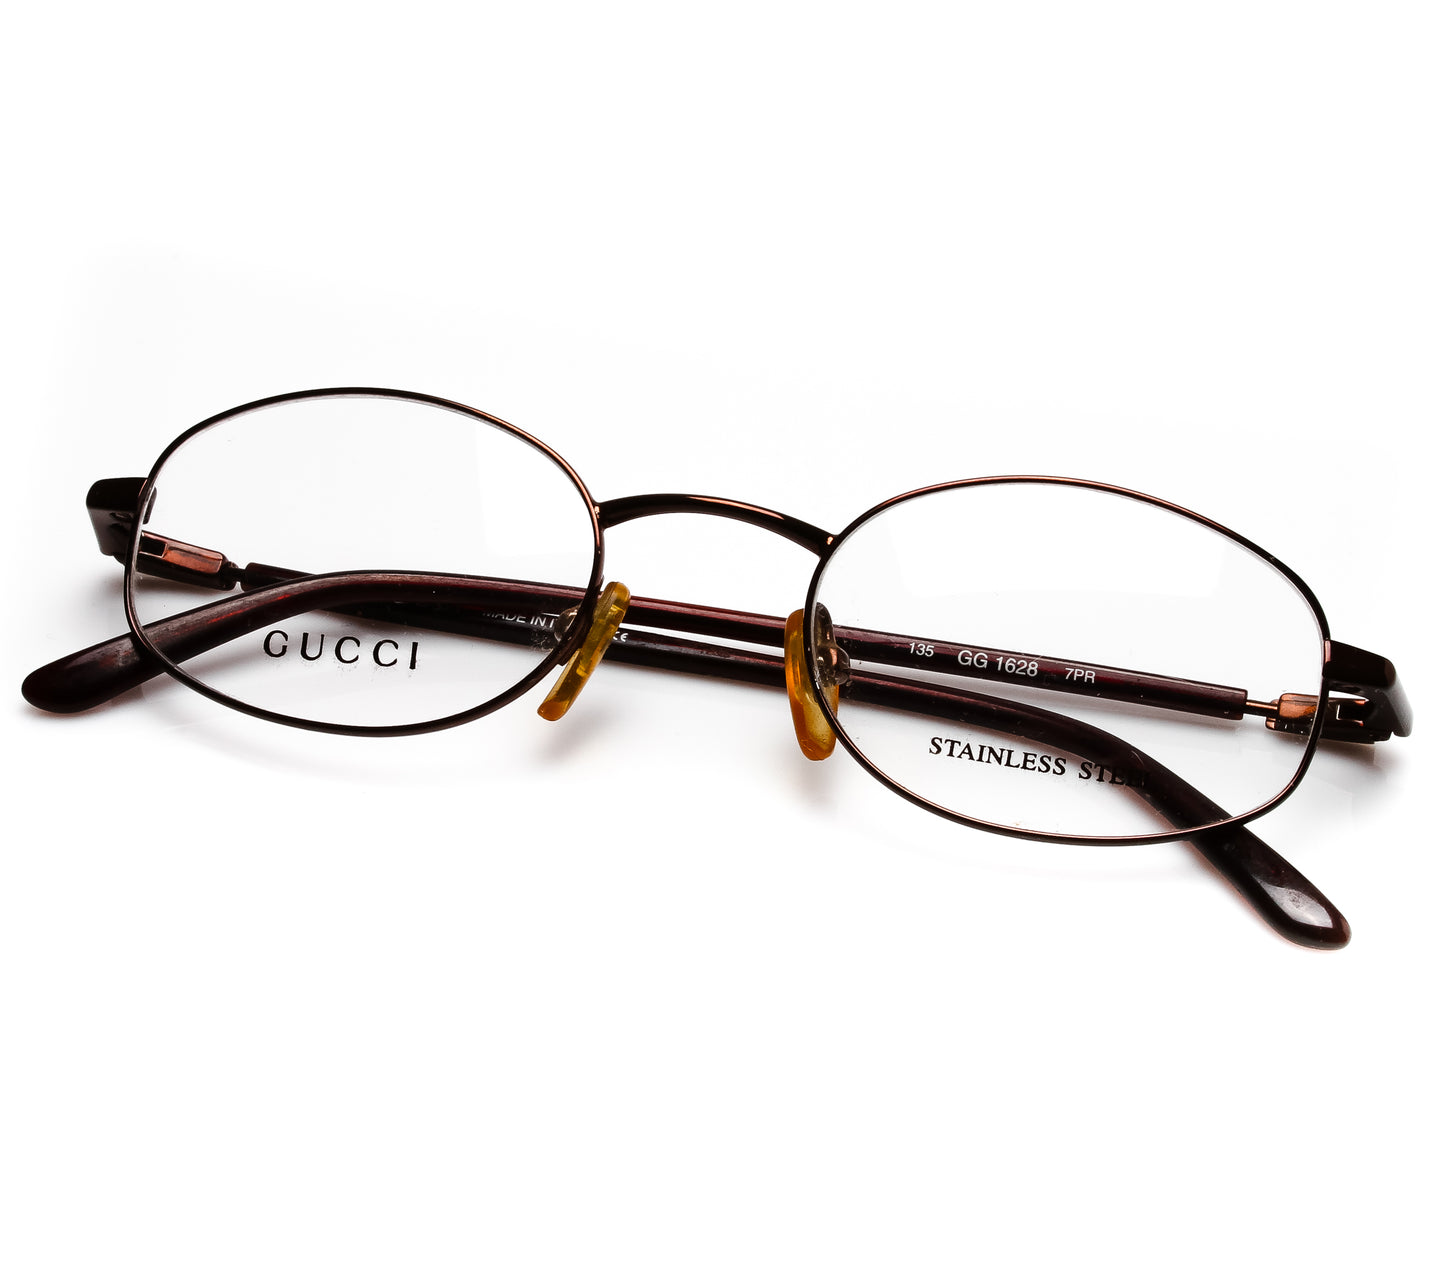 Gucci 1628 7PR Thumbnail, Gucci , glasses frames, eyeglasses online, eyeglass frames, mens glasses, womens glasses, buy glasses online, designer eyeglasses, vintage sunglasses, retro sunglasses, vintage glasses, sunglass, eyeglass, glasses, lens, vintage frames company, vf